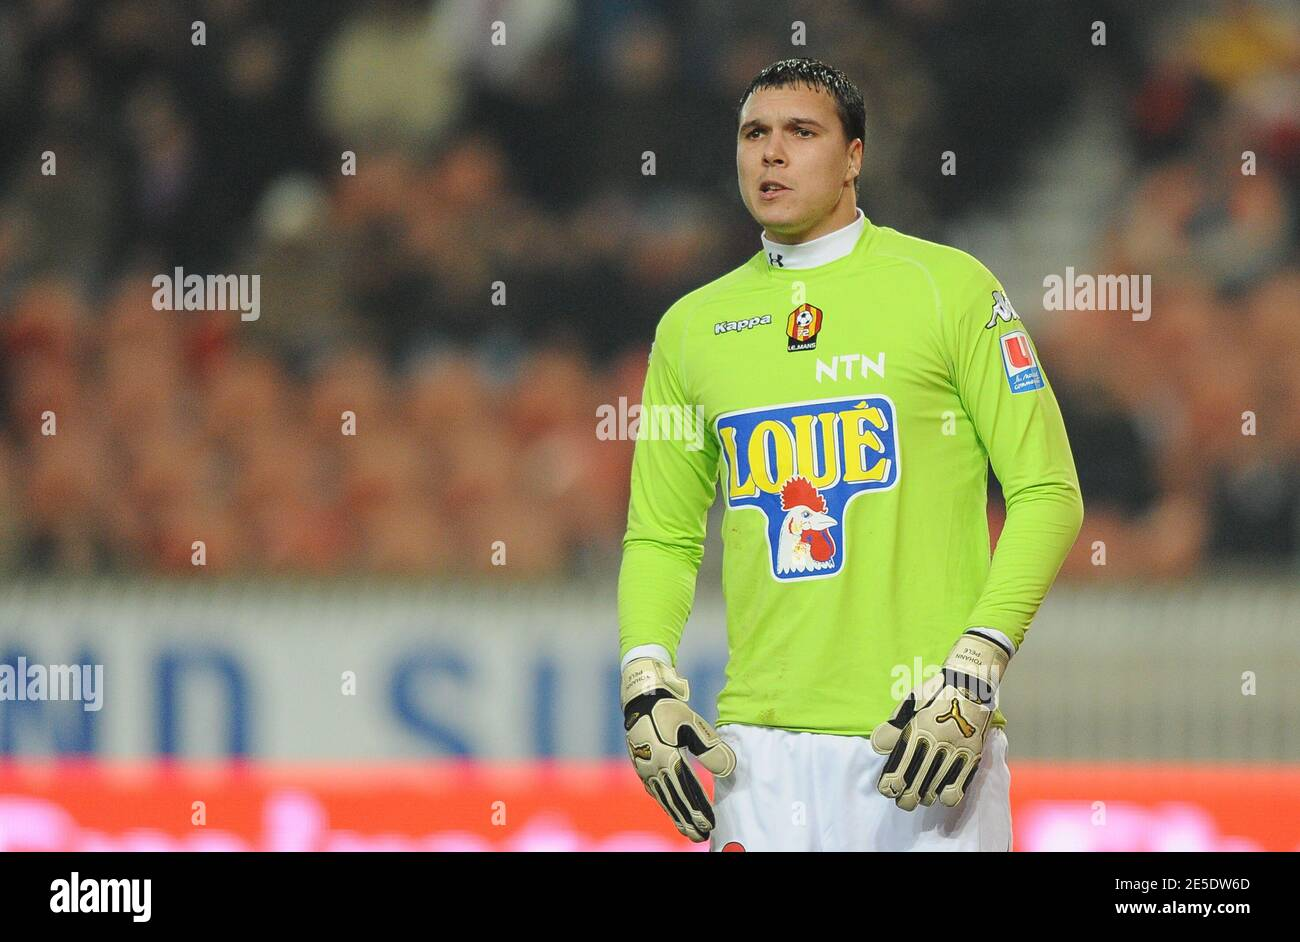 Yohann Pele High Resolution Stock Photography and Images - Alamy